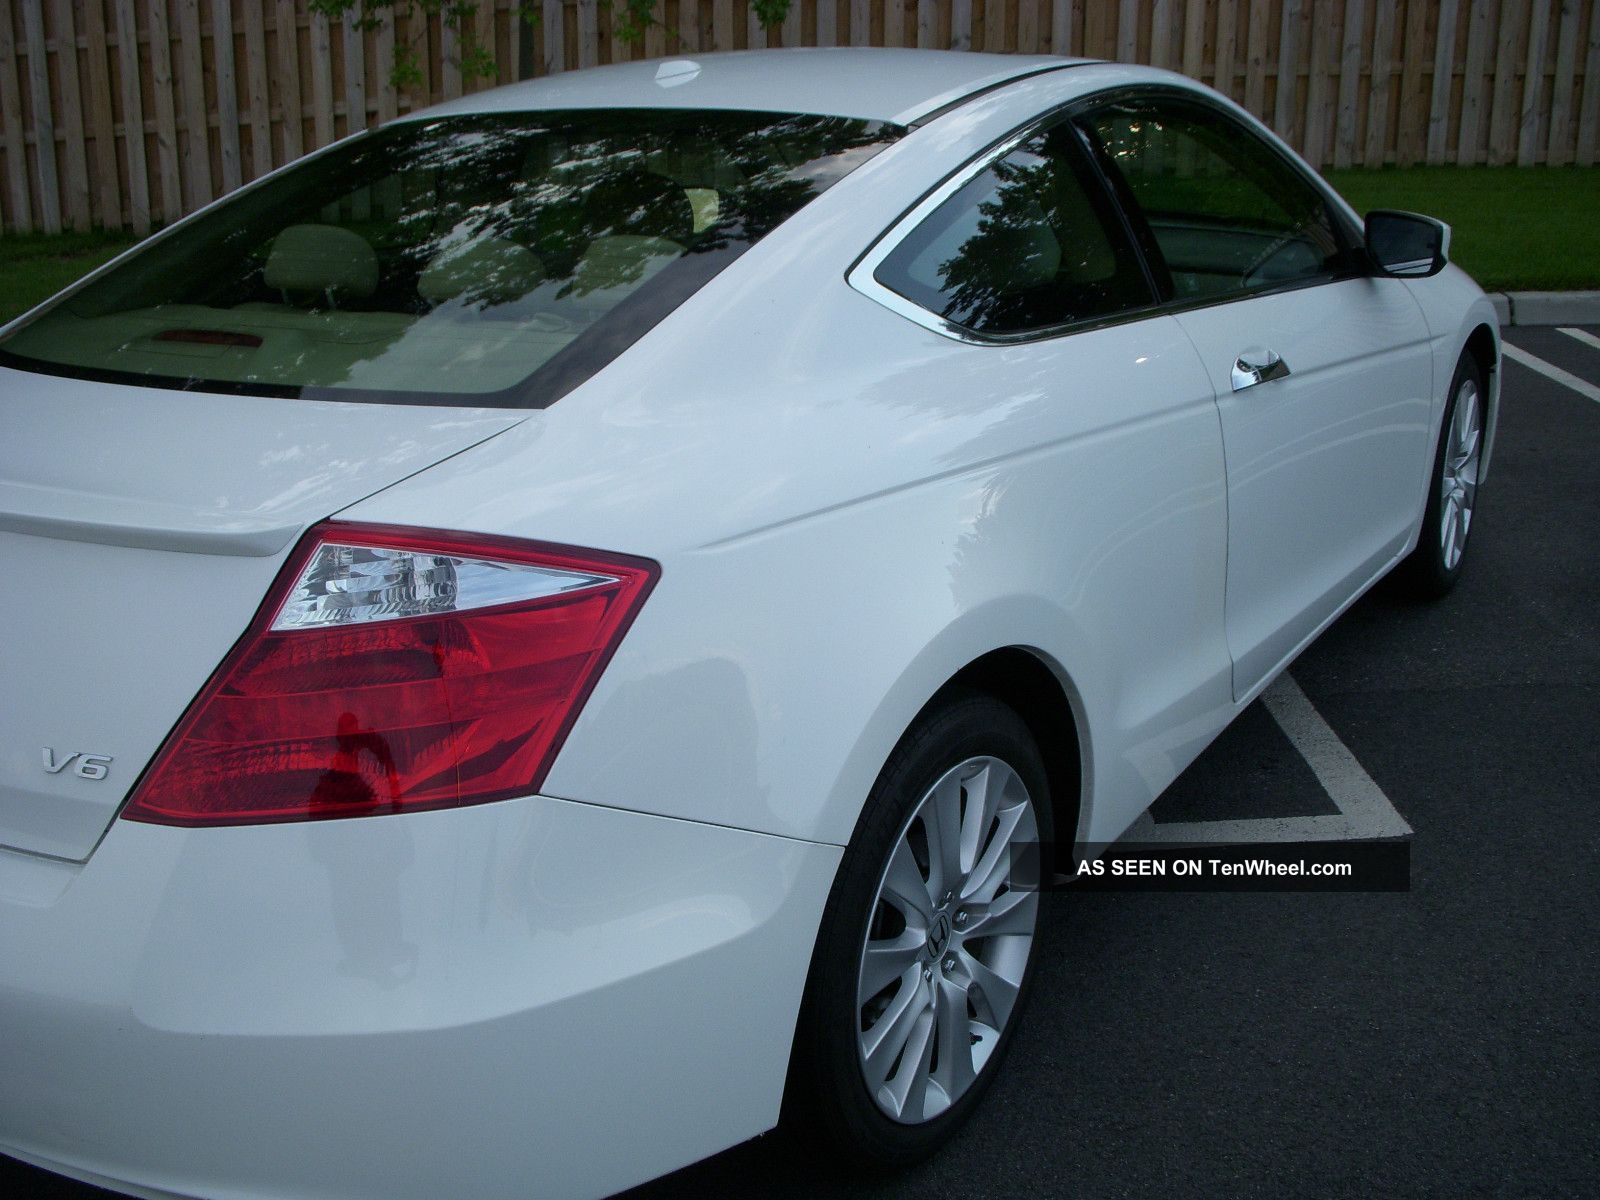 2009 honda accord coupe 6 cyl ex l white with tan interior. Black Bedroom Furniture Sets. Home Design Ideas